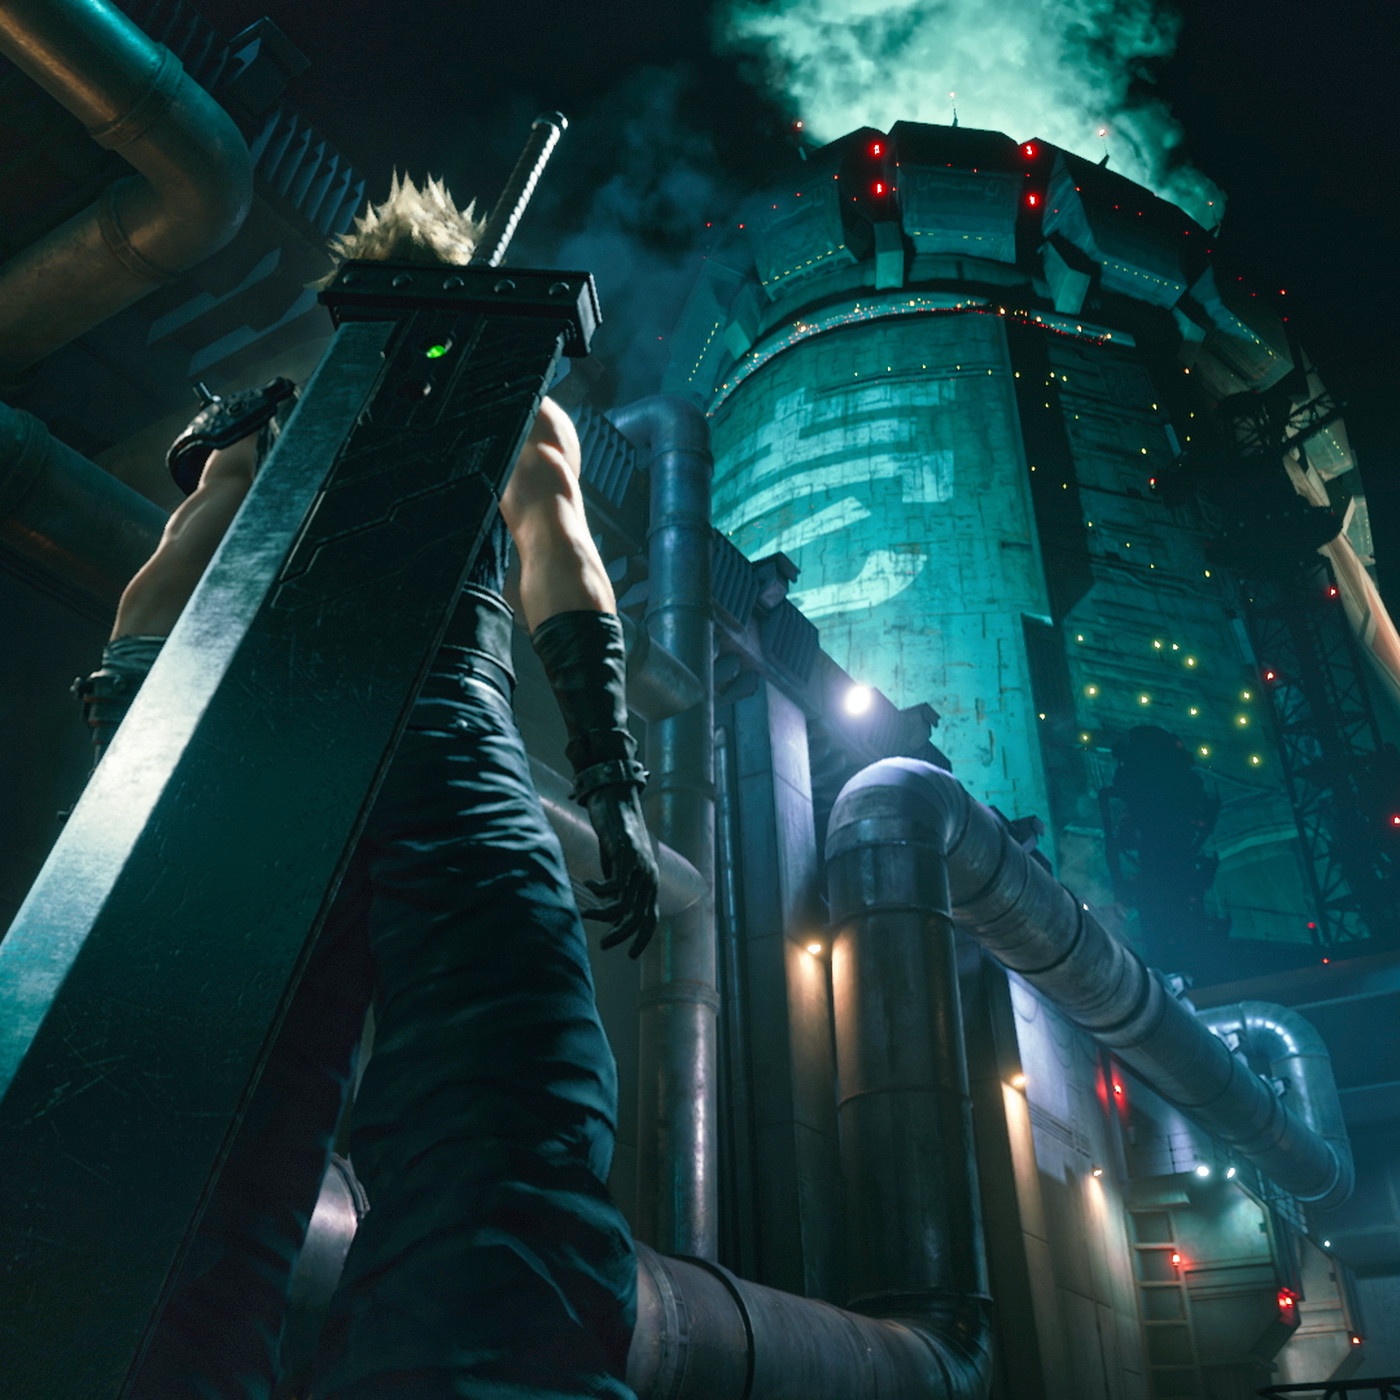 Final Fantasy VII Remake for PS4 is cheaper than ever - The Verge